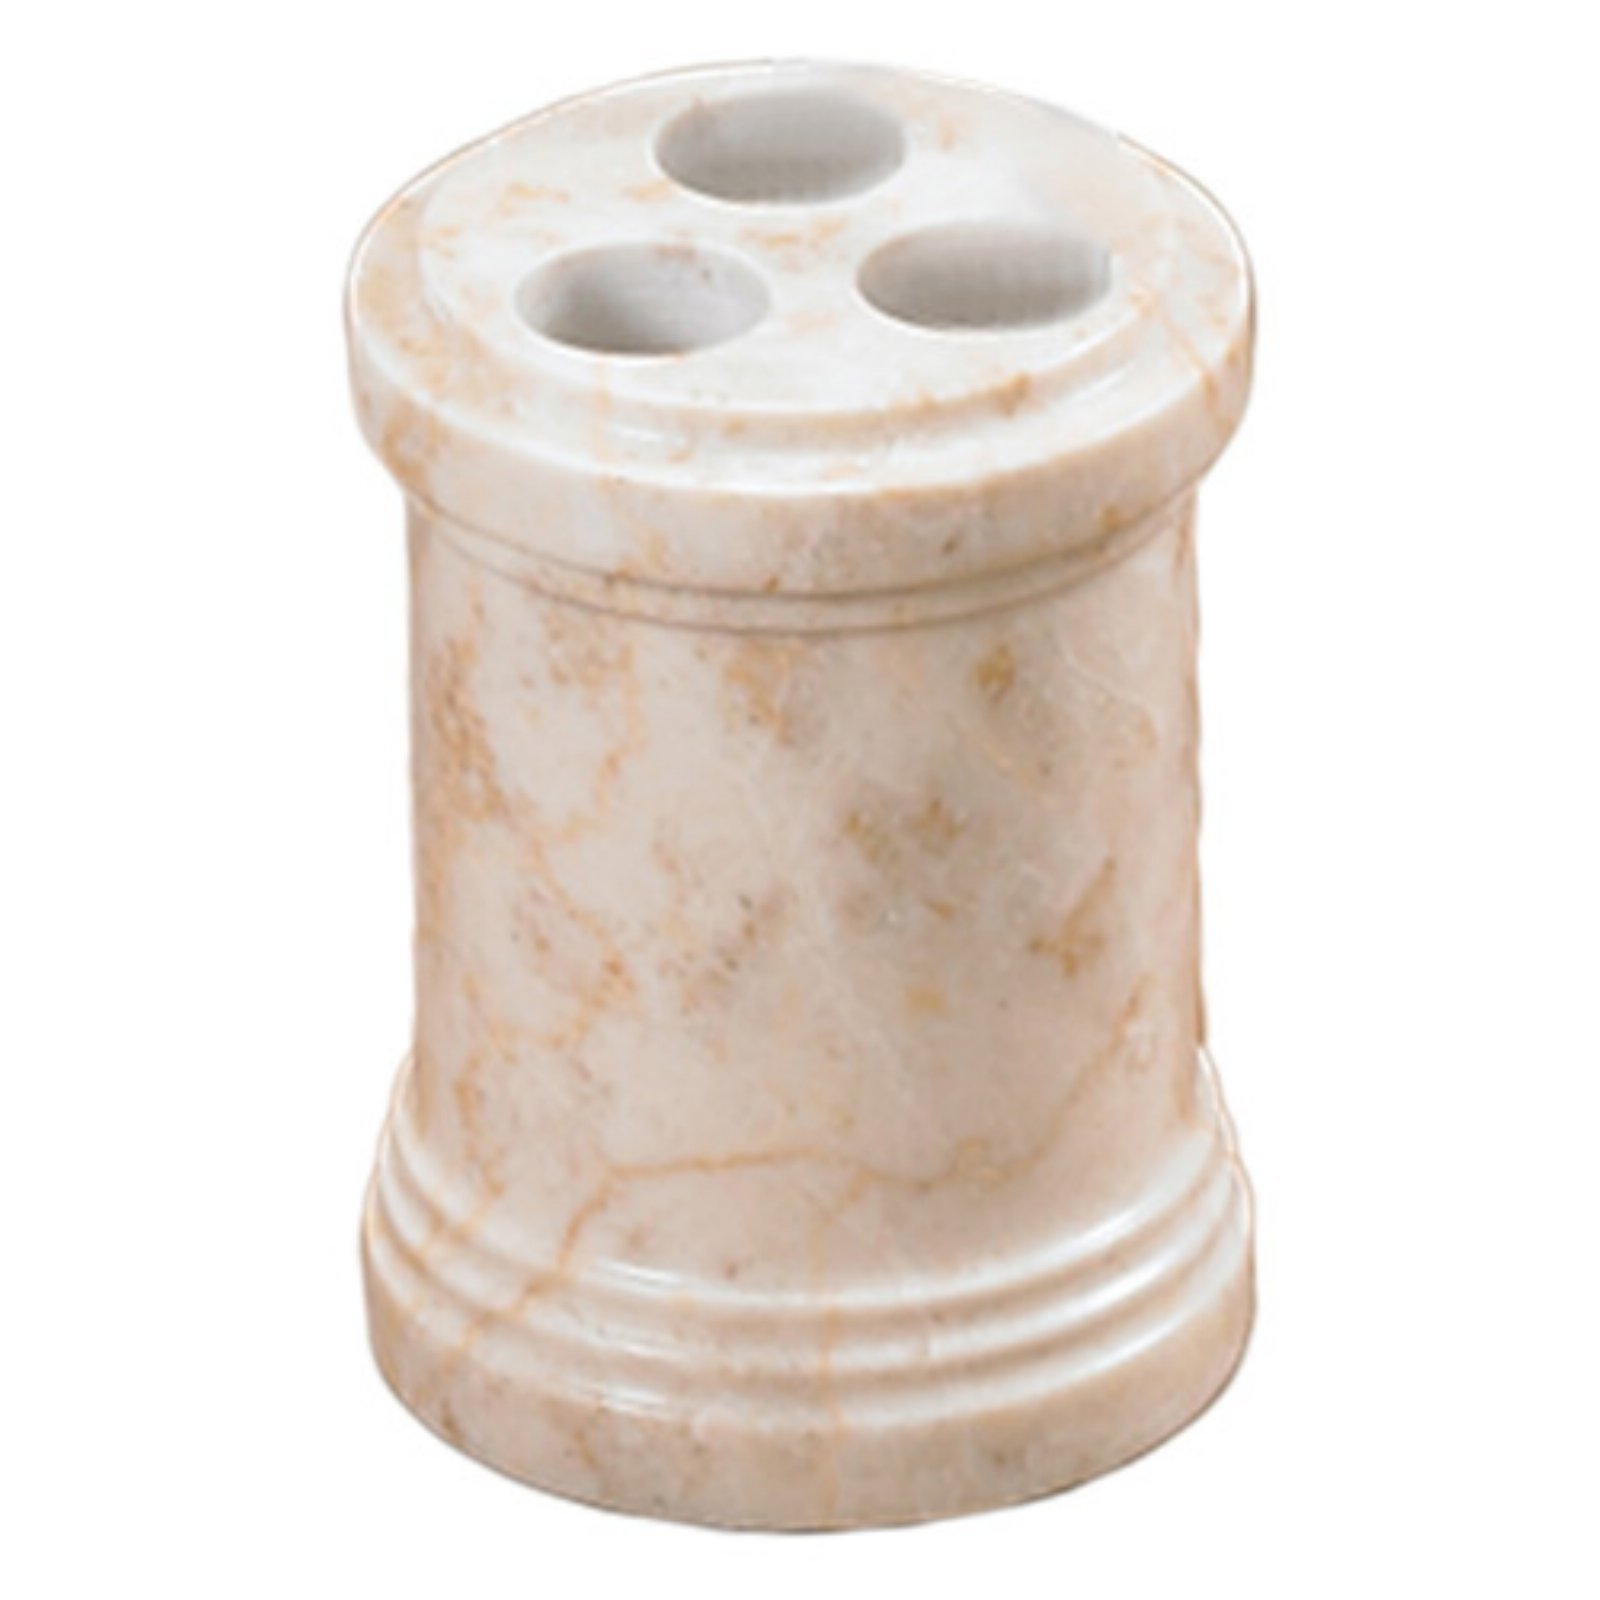 Creative Home Marble Column Toothbrush Holder